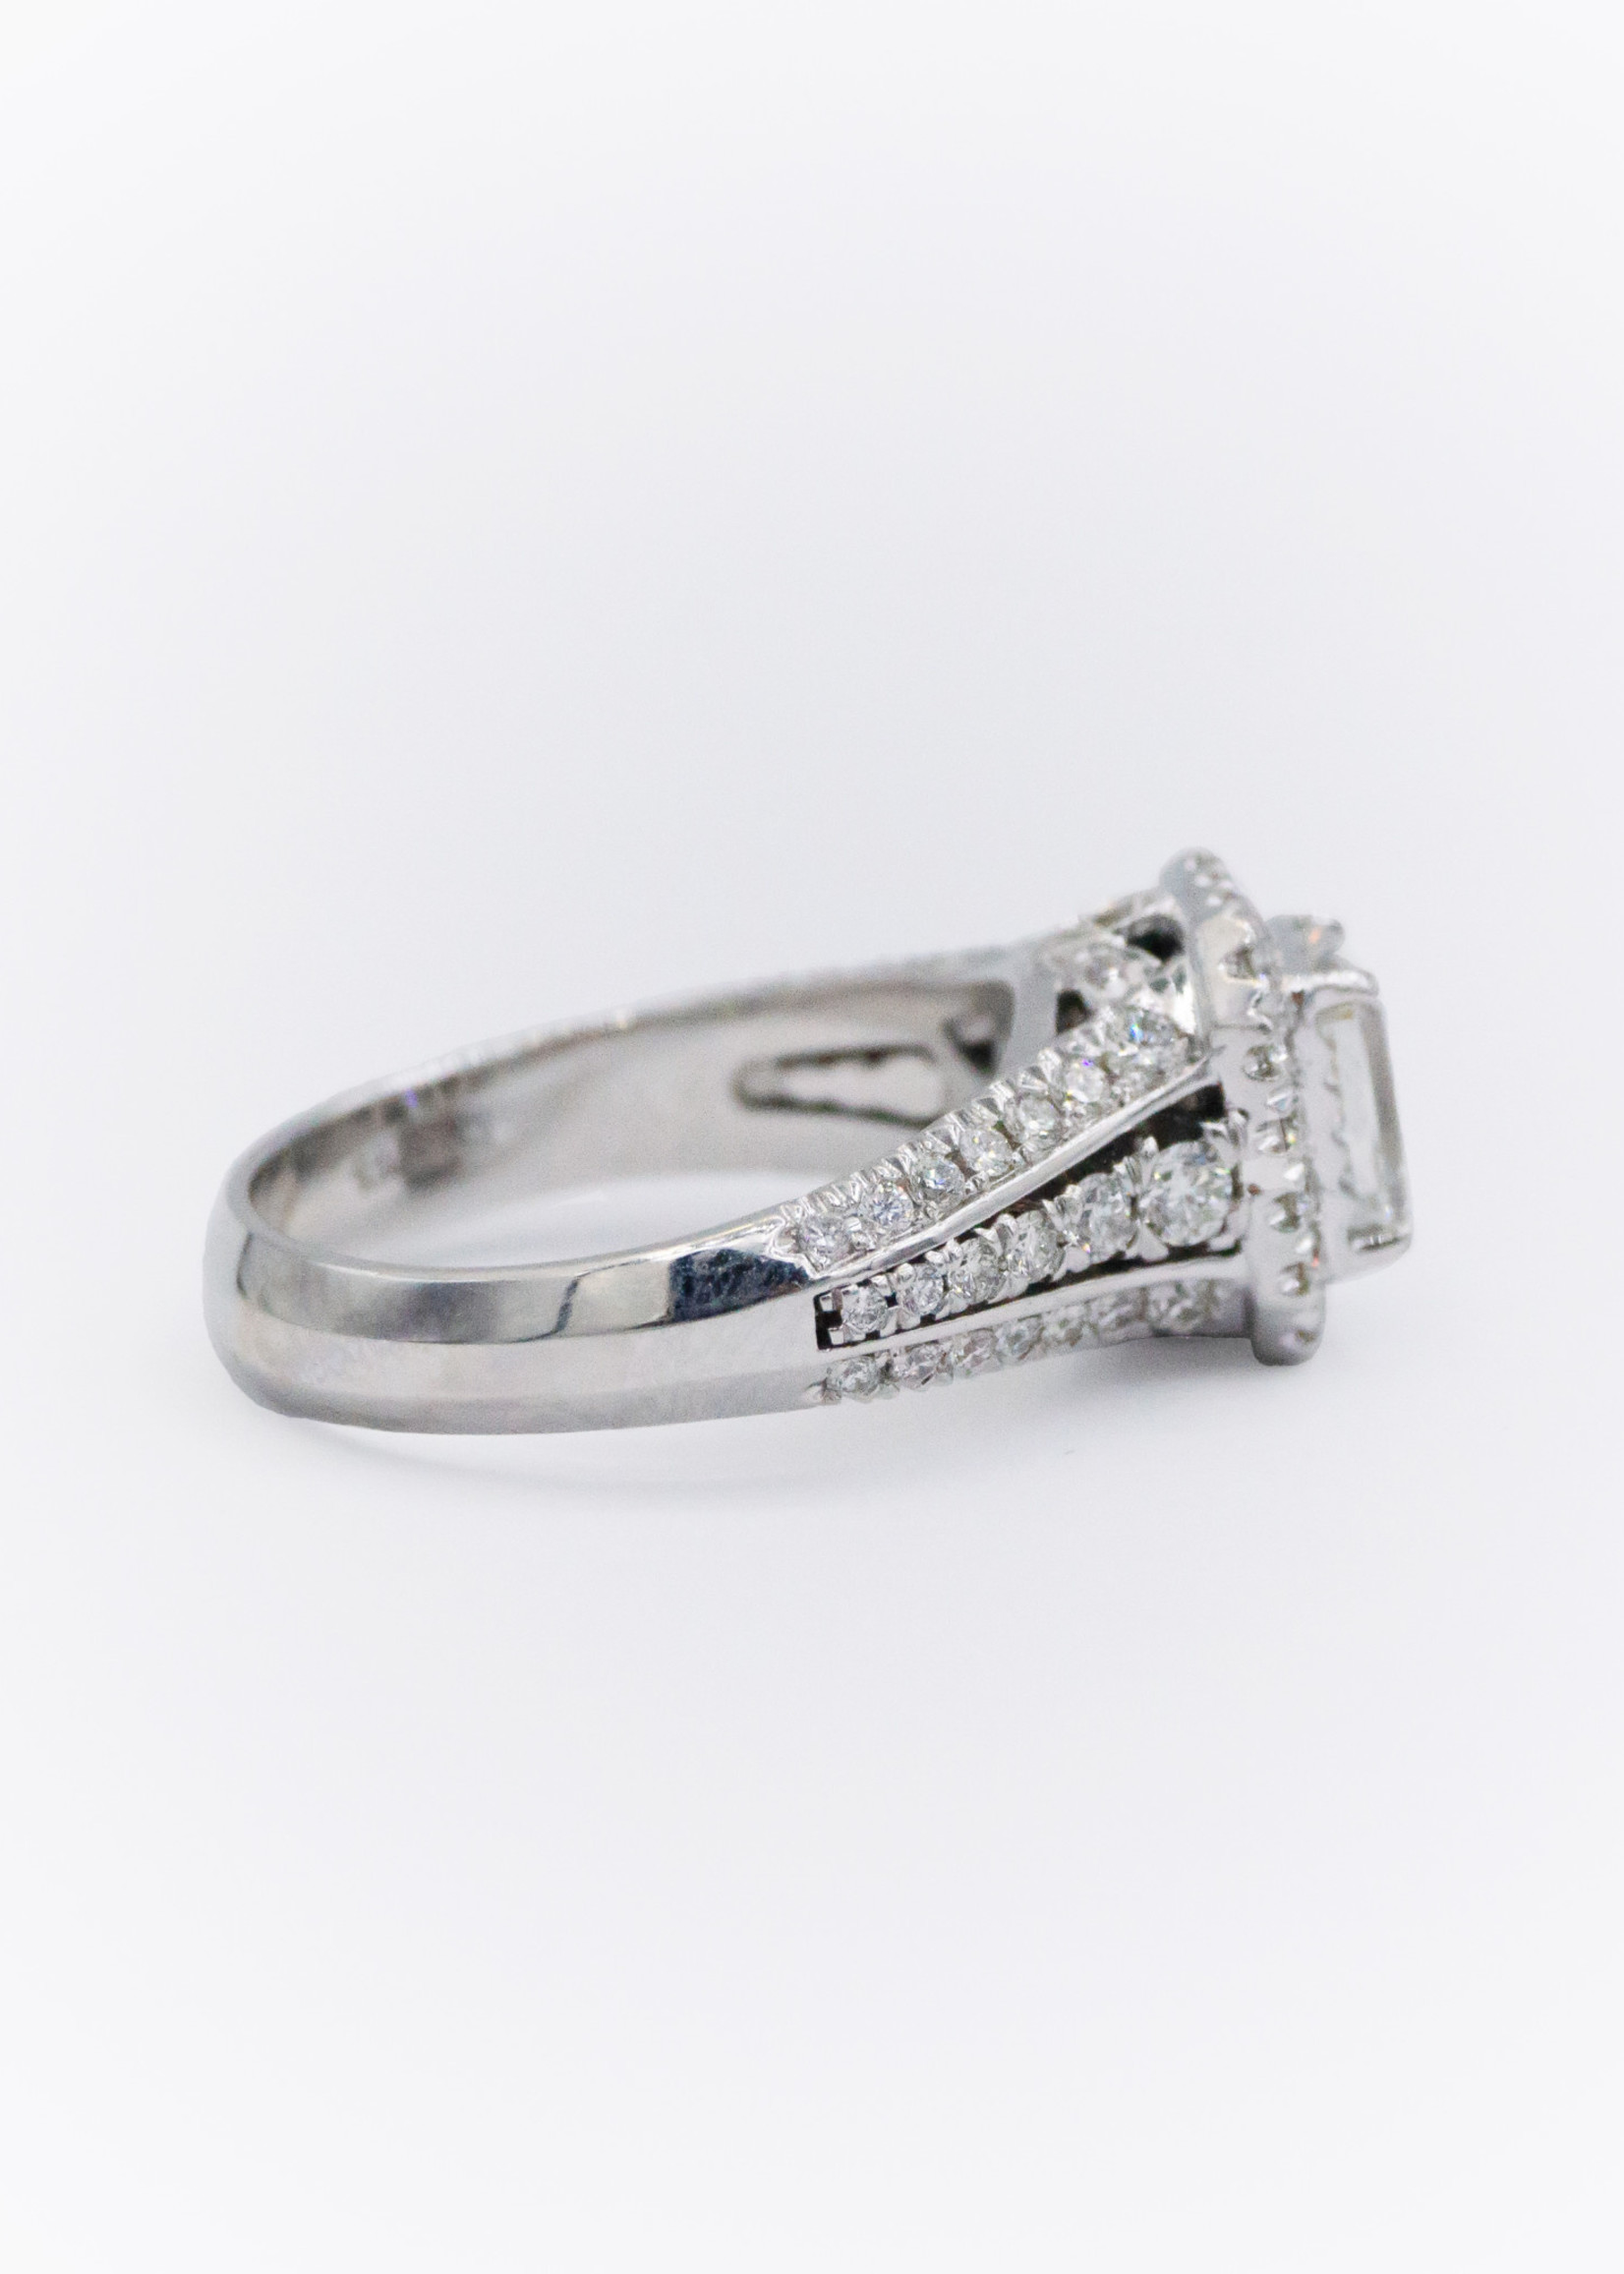 Christopher Design Eng 18kW w/ 1.13ct Criss VS1 I Color Dia, GIA